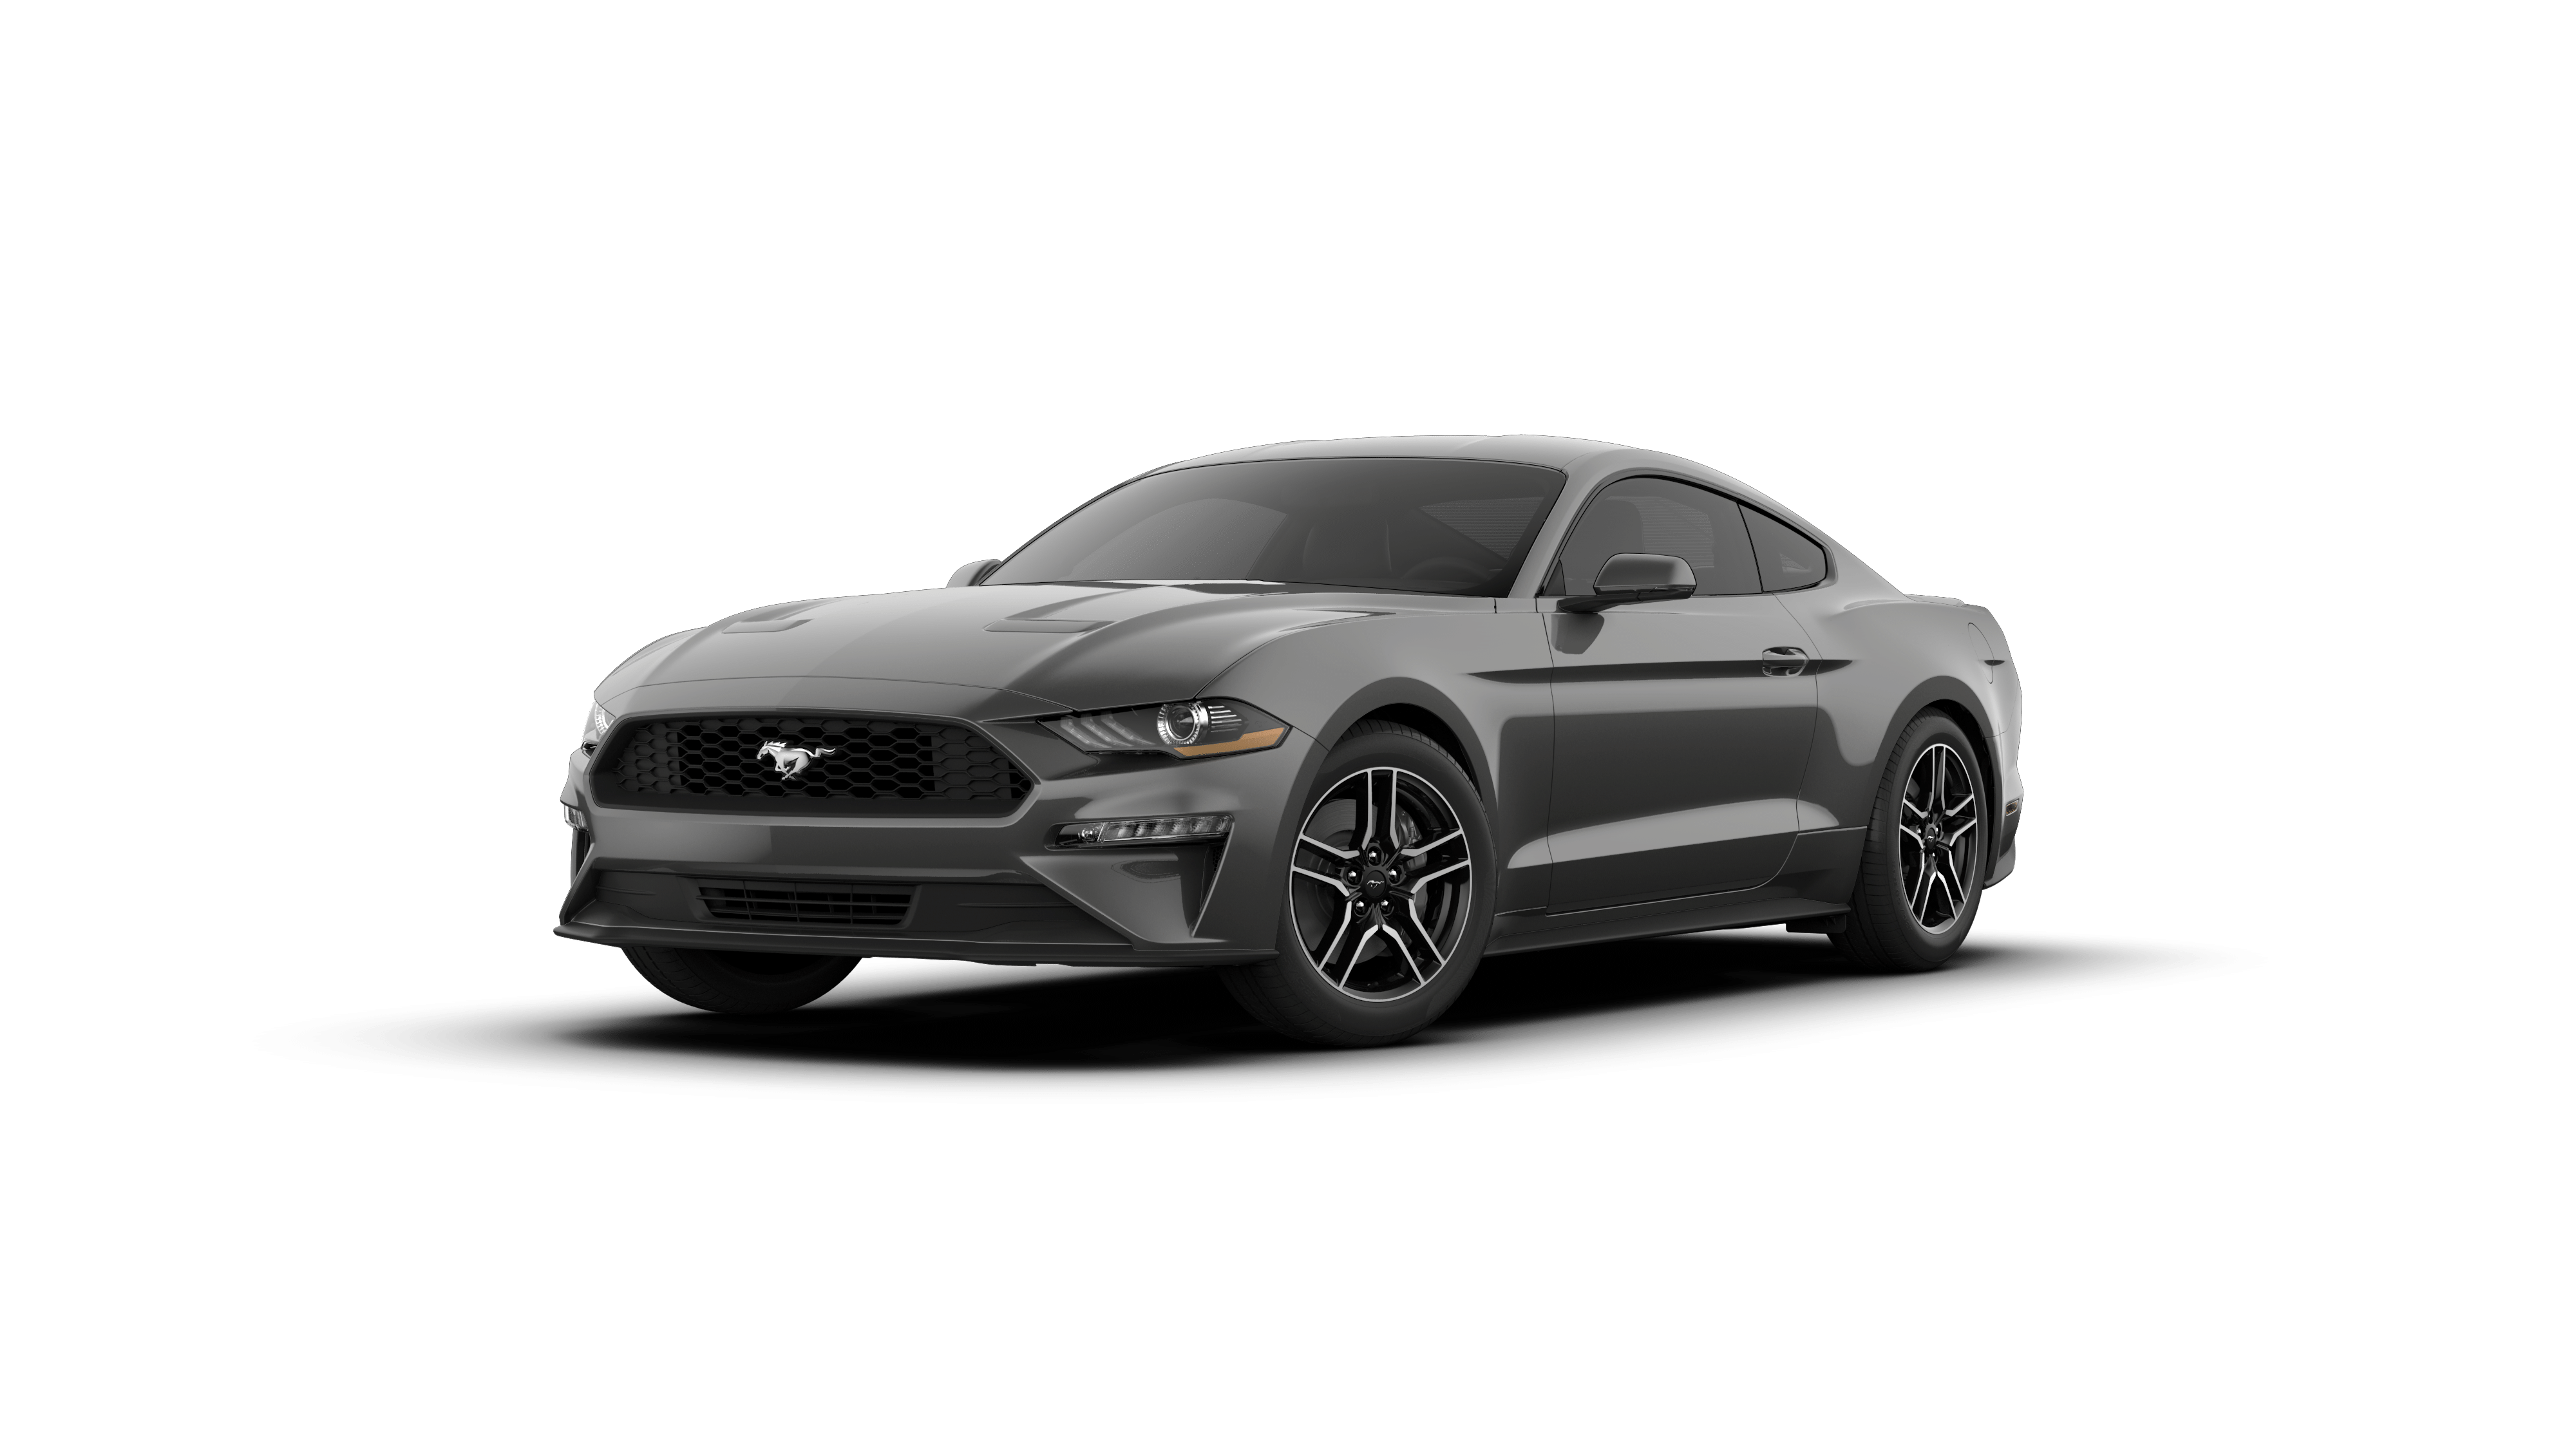 Cars for Sale Near Quakertown Pa Best Of Quakertown New ford Mustang Vehicles for Sale at Ciocca ford